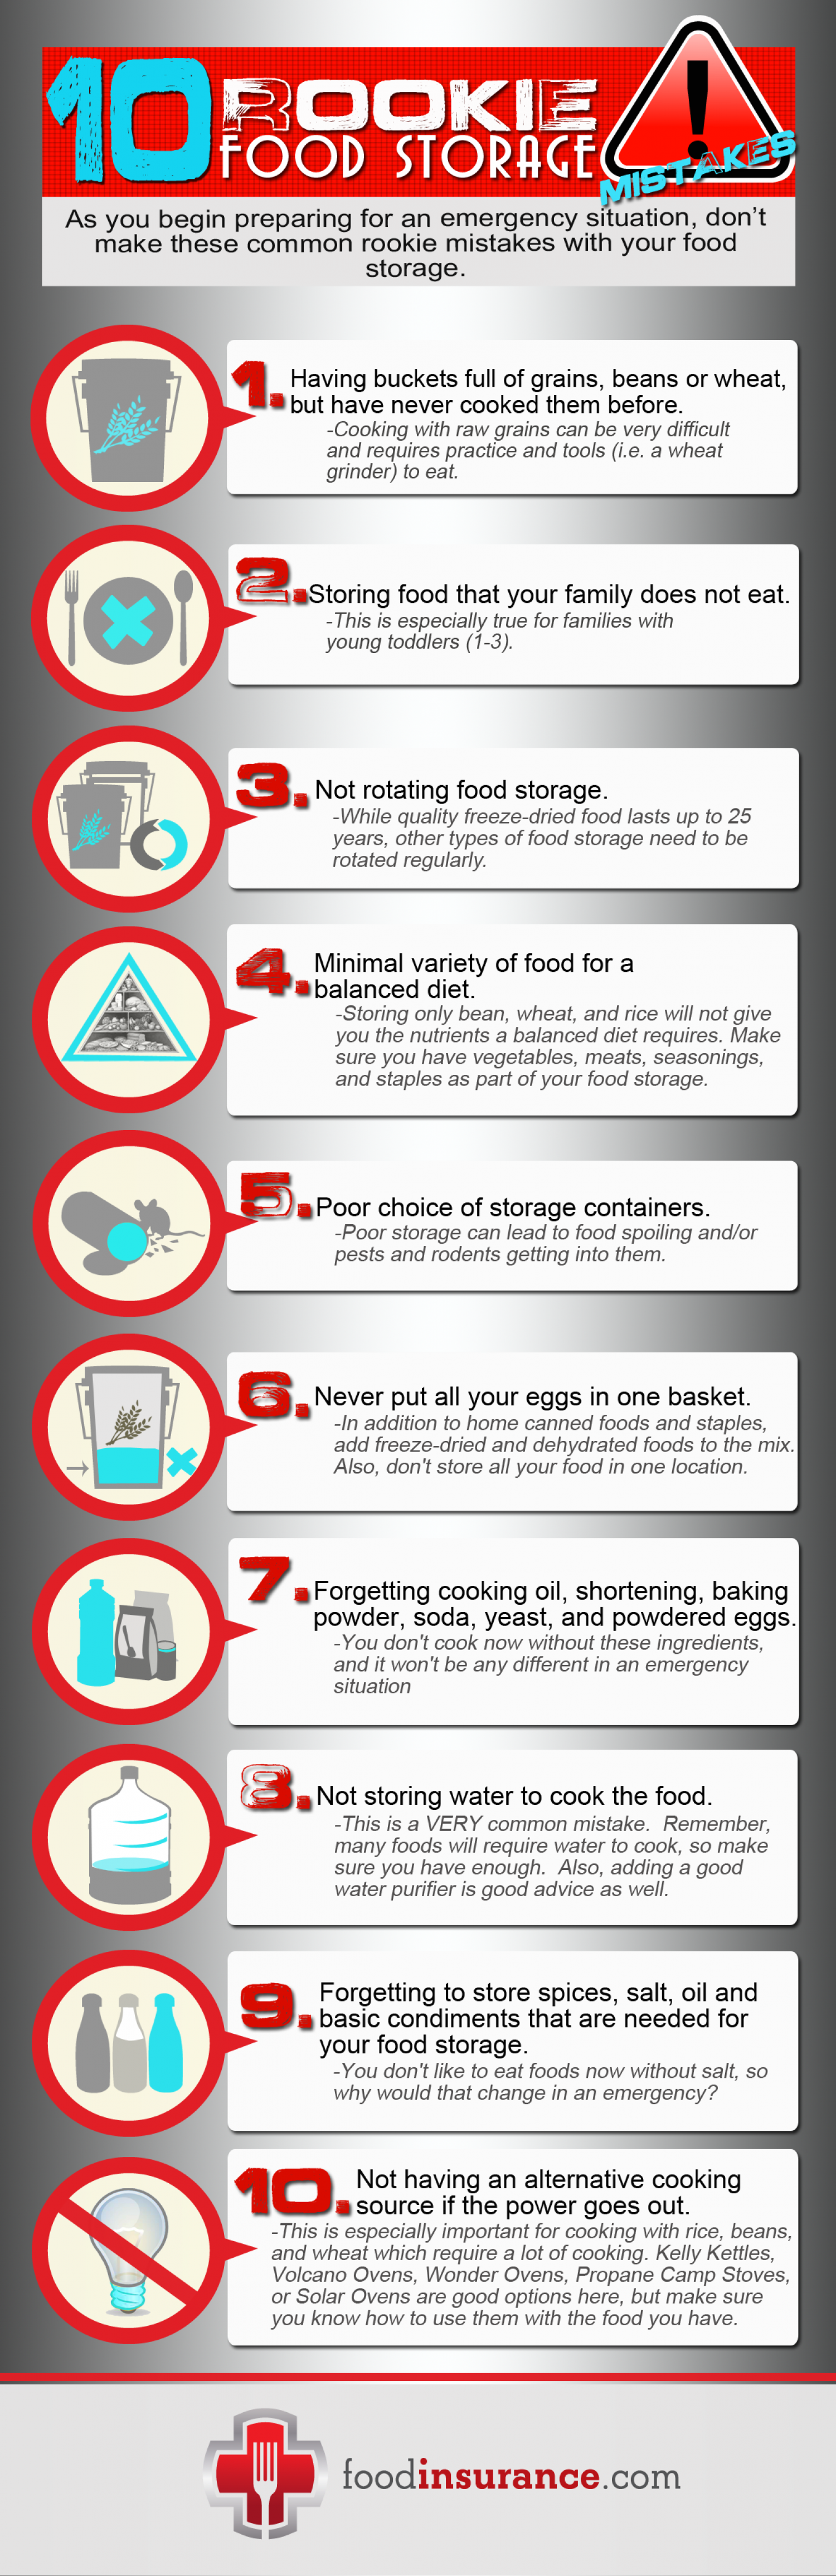 10 Rookie Food Storage Mistakes Infographic Infographic